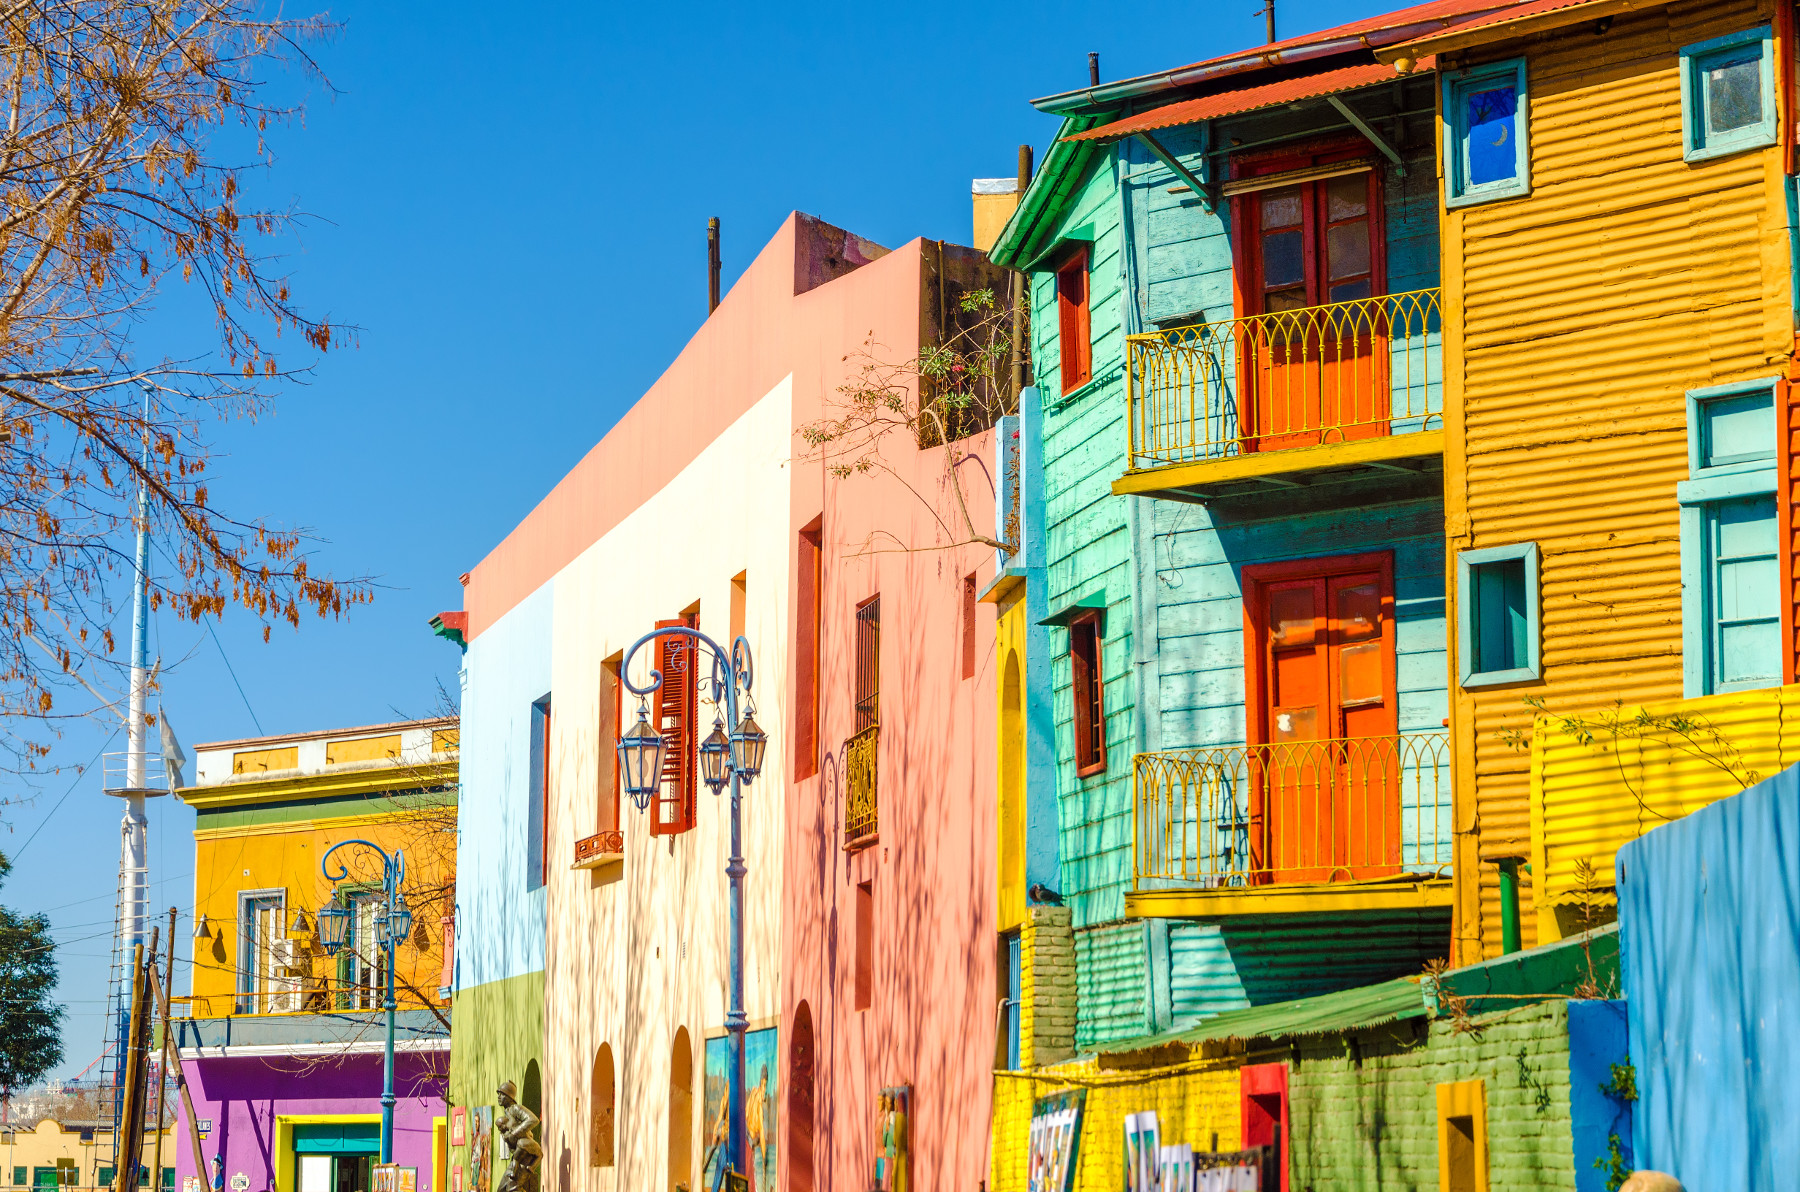 Bright colors of Caminito street in La Boca neighborhood of Buenos Aires, Argentina.